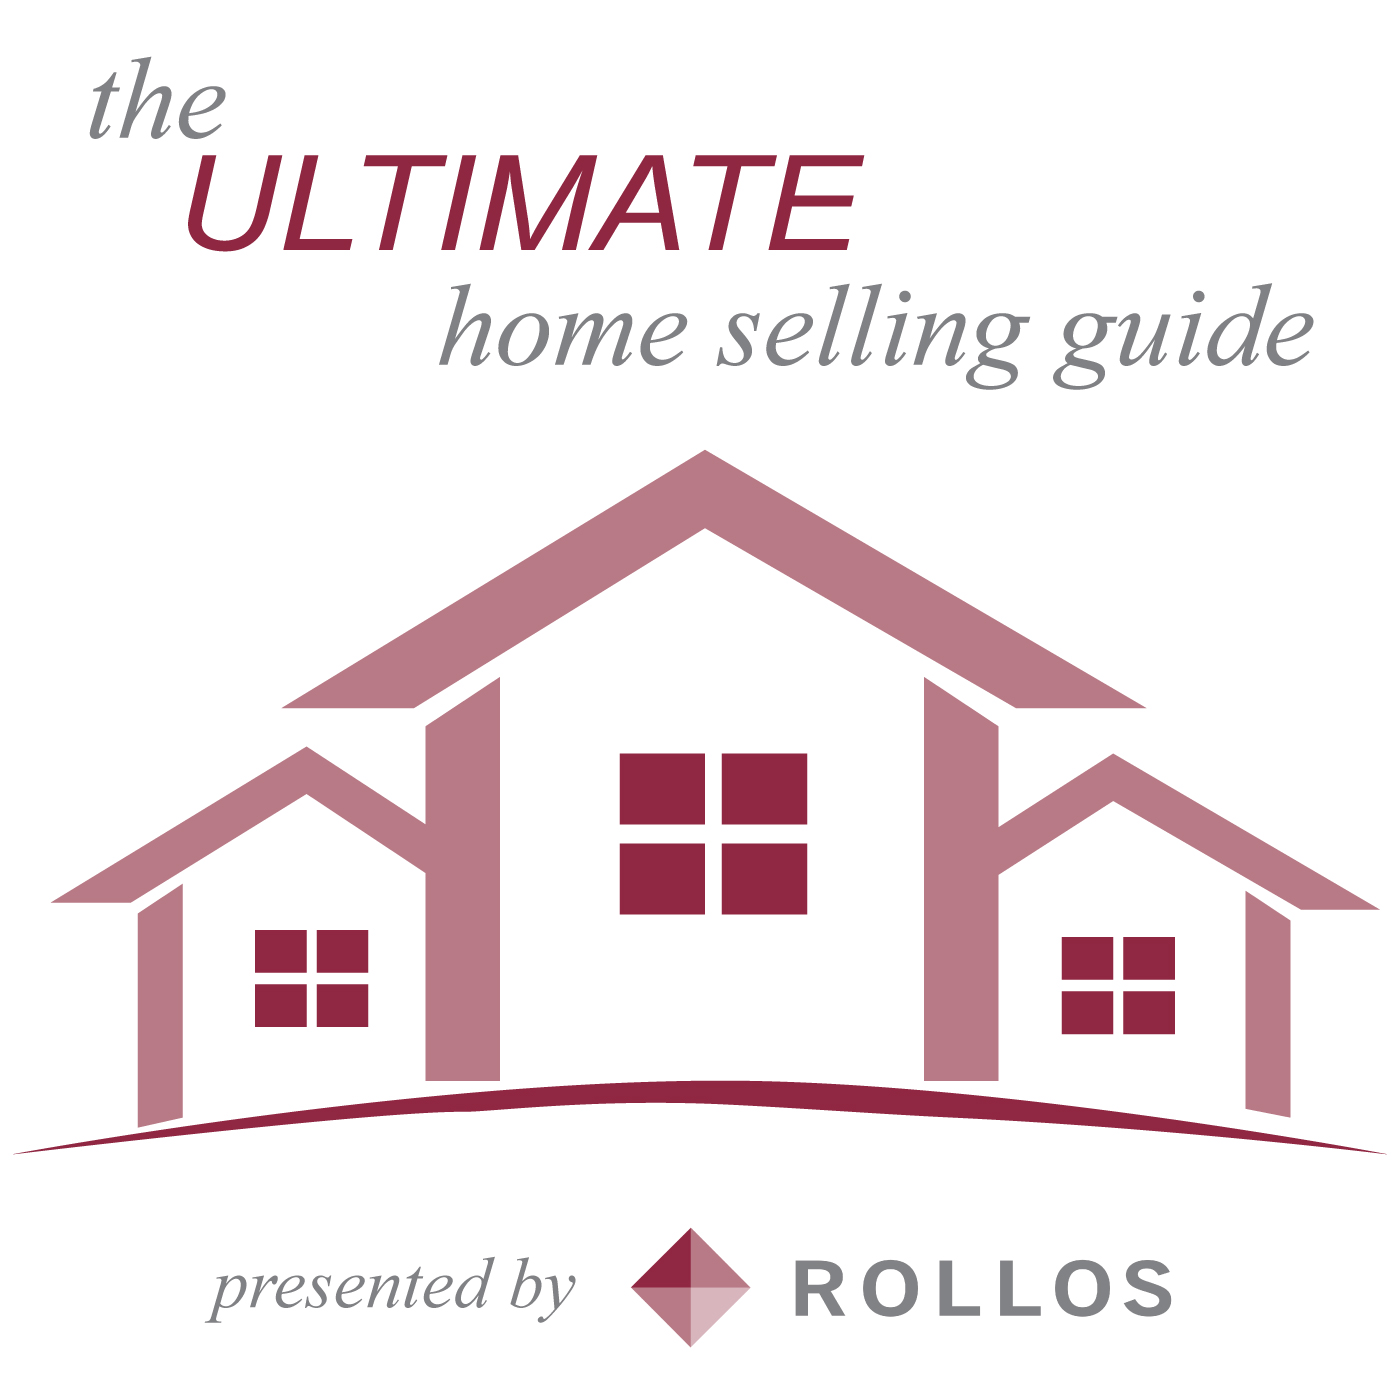 The Ultimate Home Selling Guide